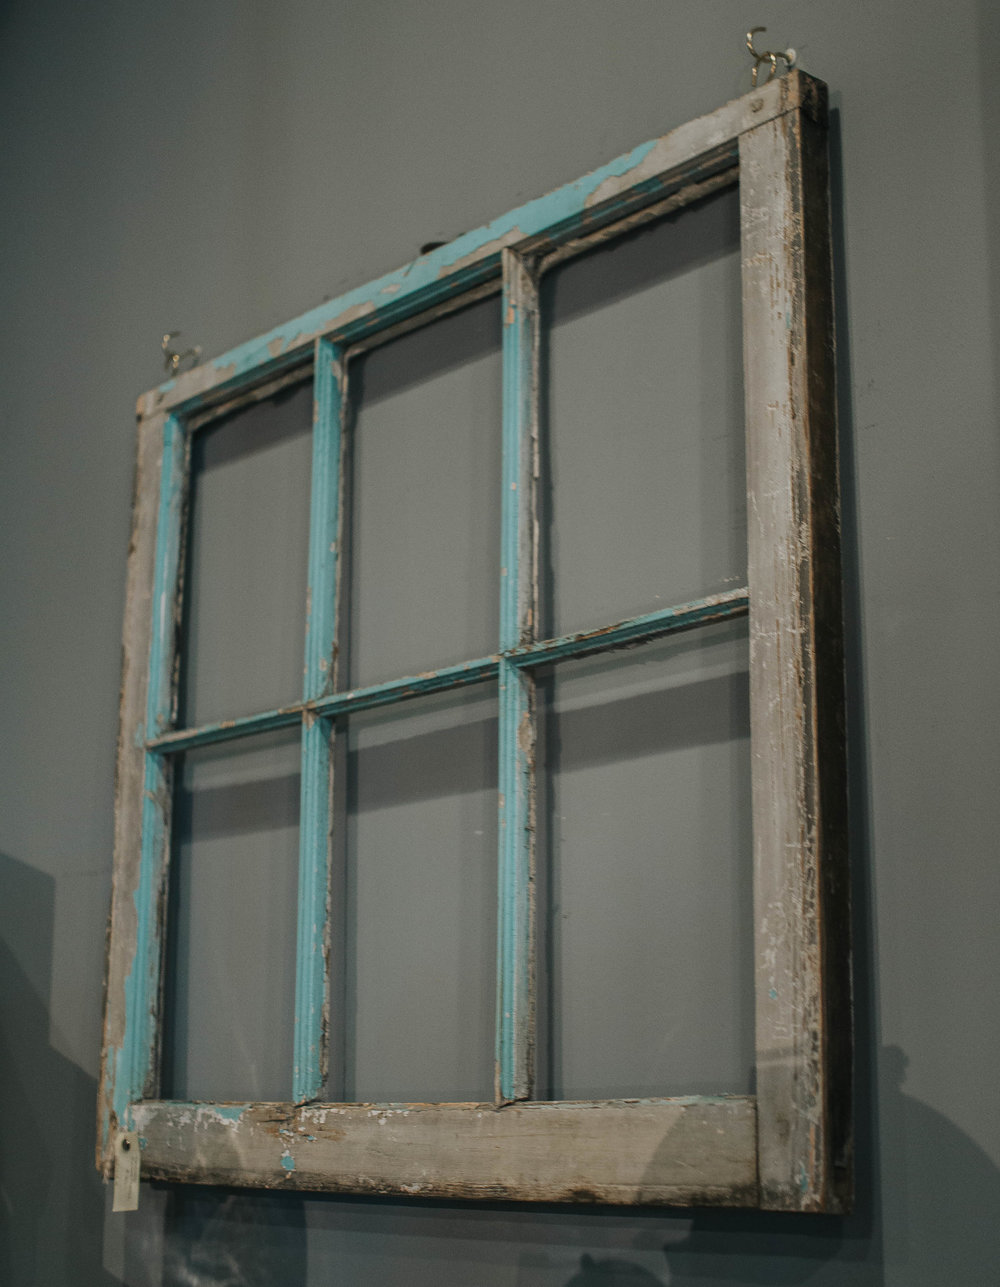 vintage_blue_window_frame2.jpg